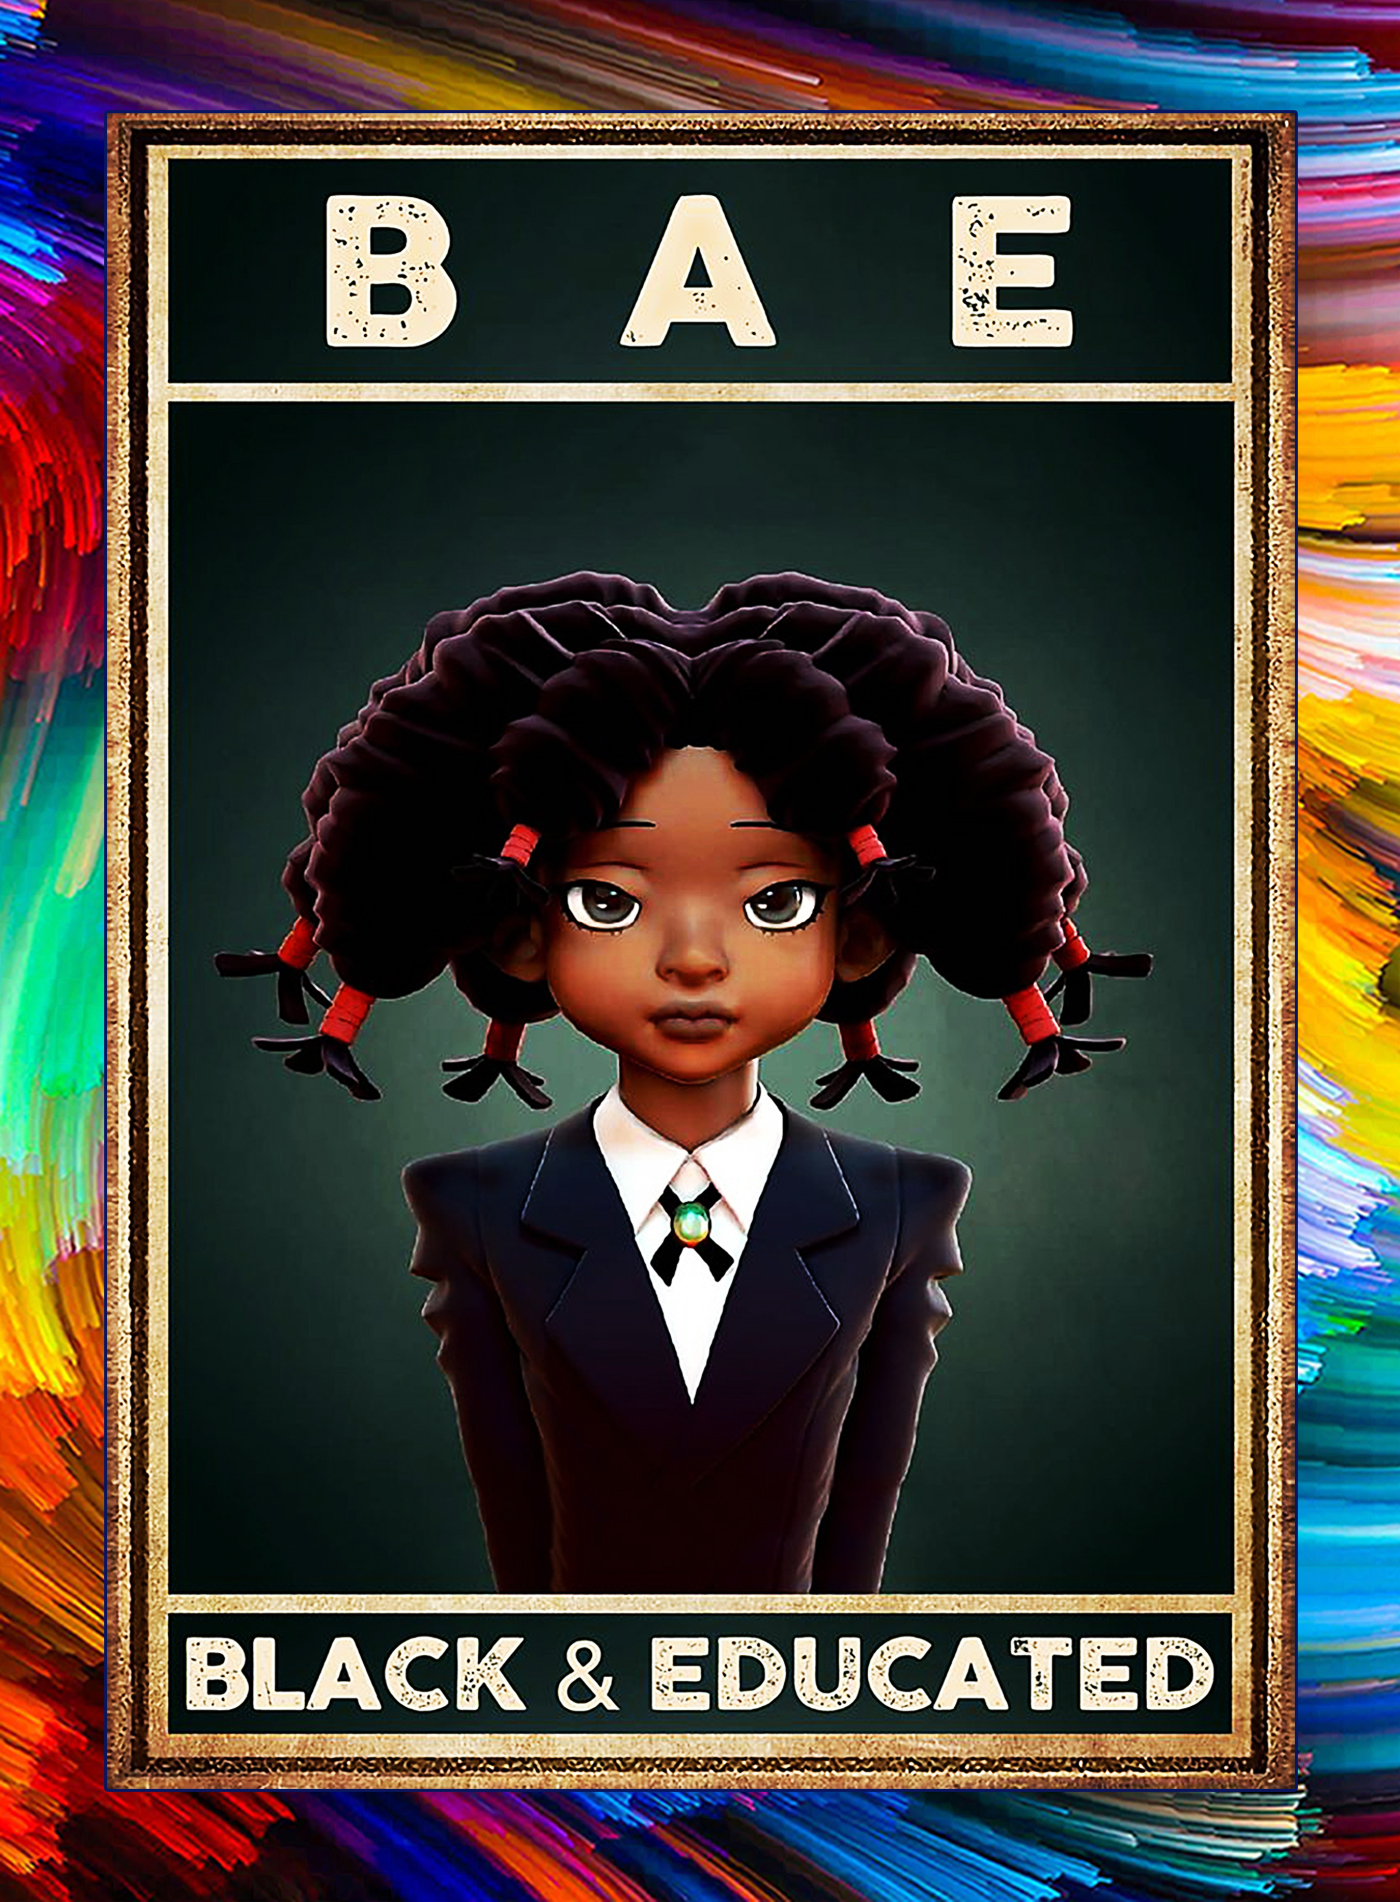 Black and educated poster - A1